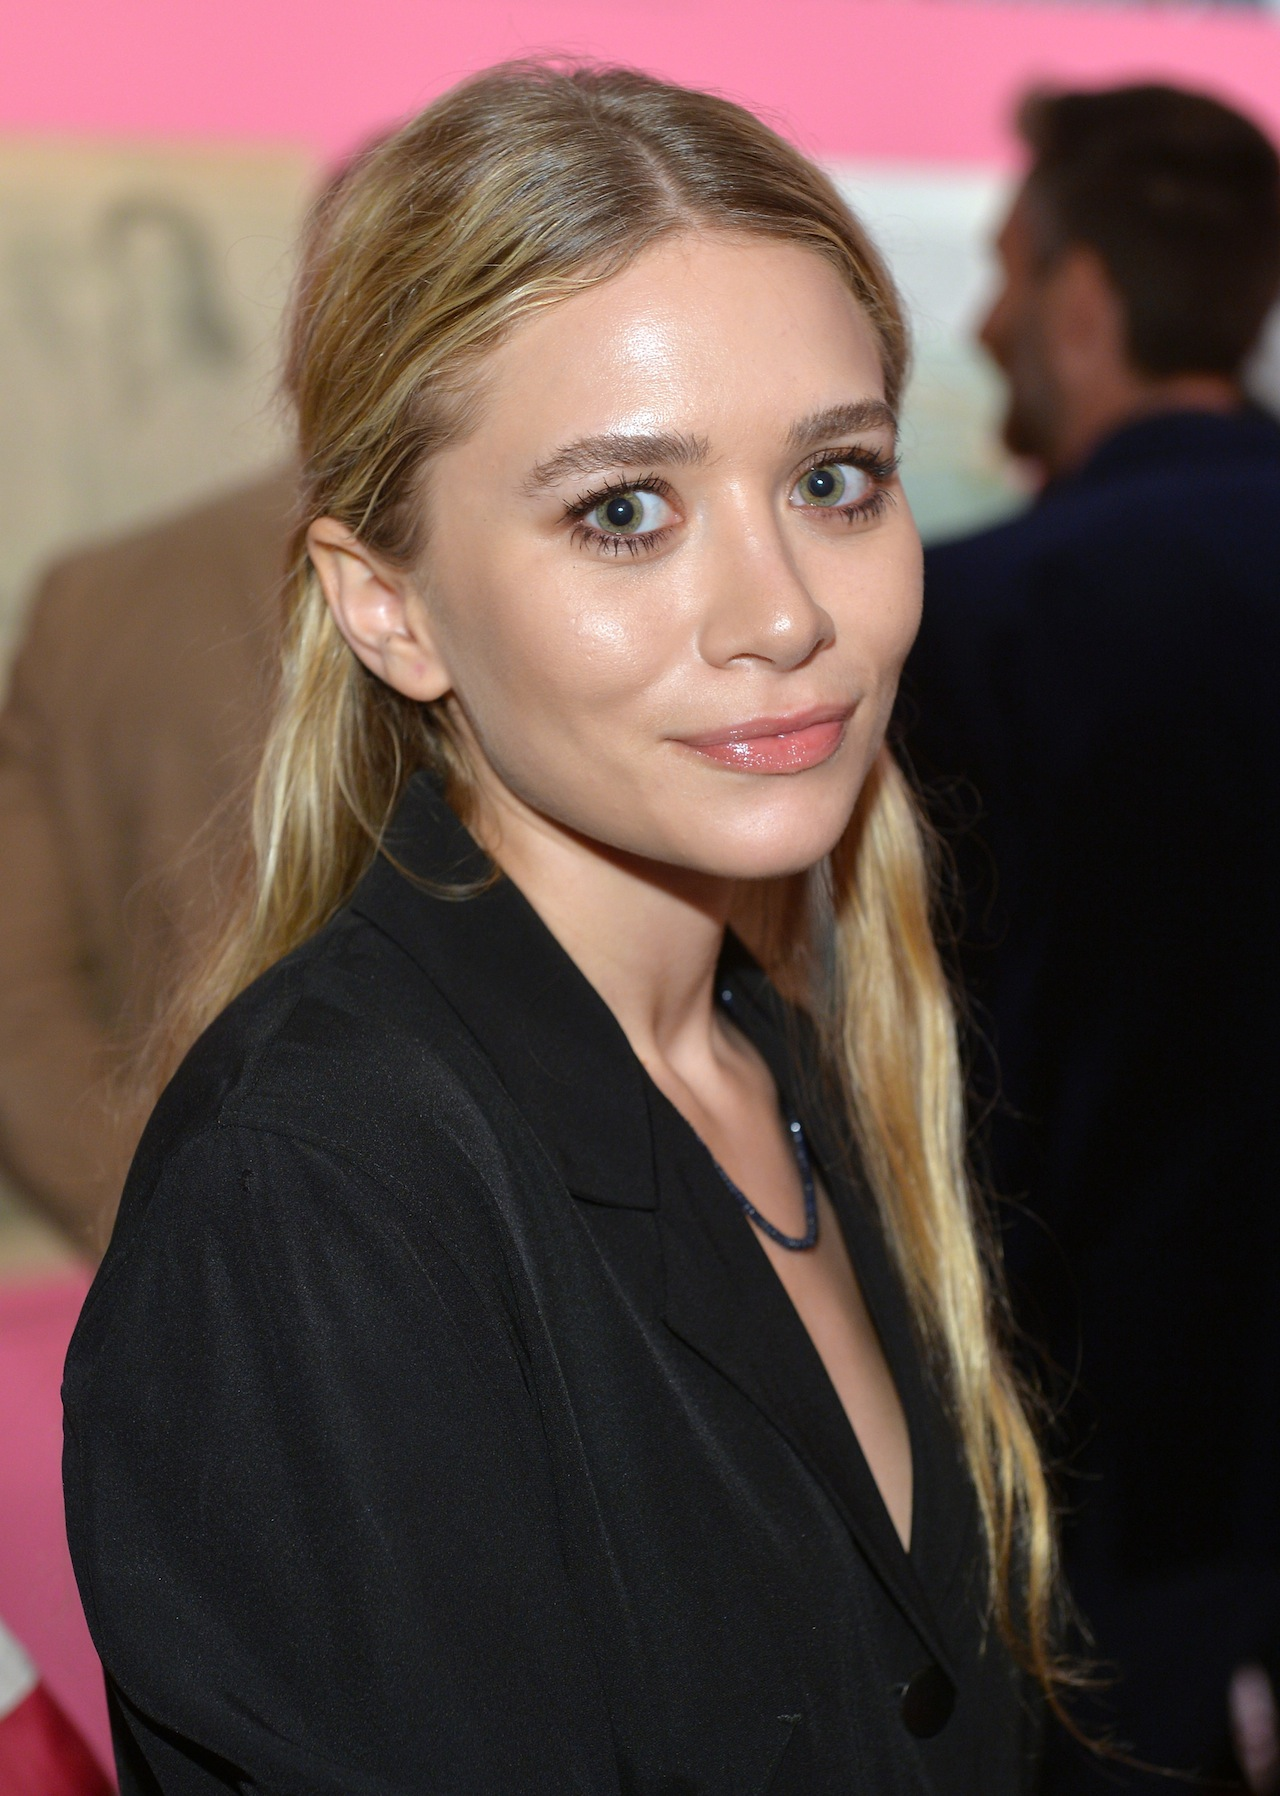 ashley olsen instagram official